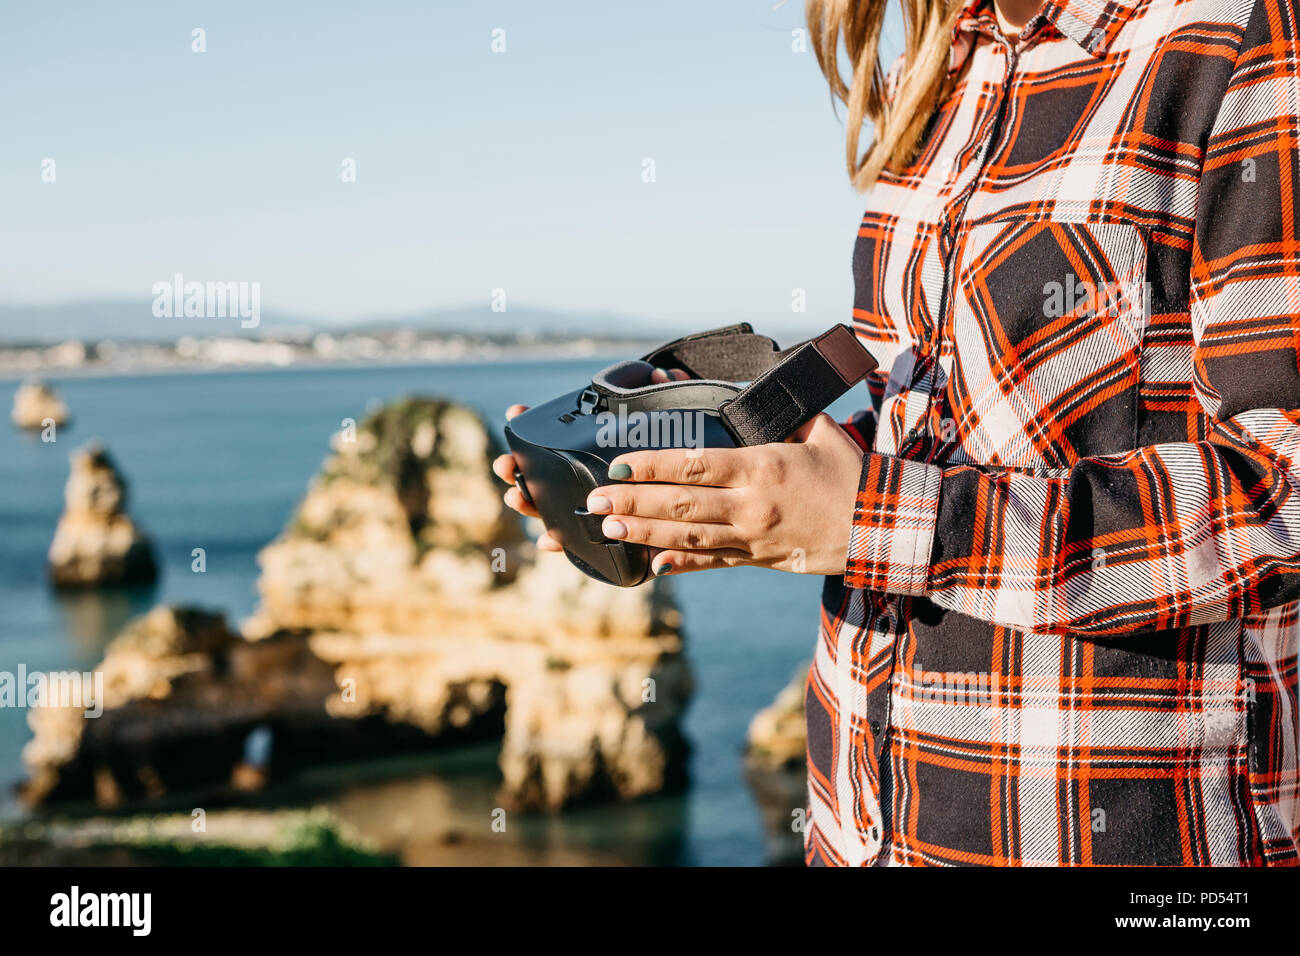 The girl is holding virtual reality glasses and is going to put them on. Conceptual photography of virtual travel or tourism. Modern technology in everyday life. - Stock Image